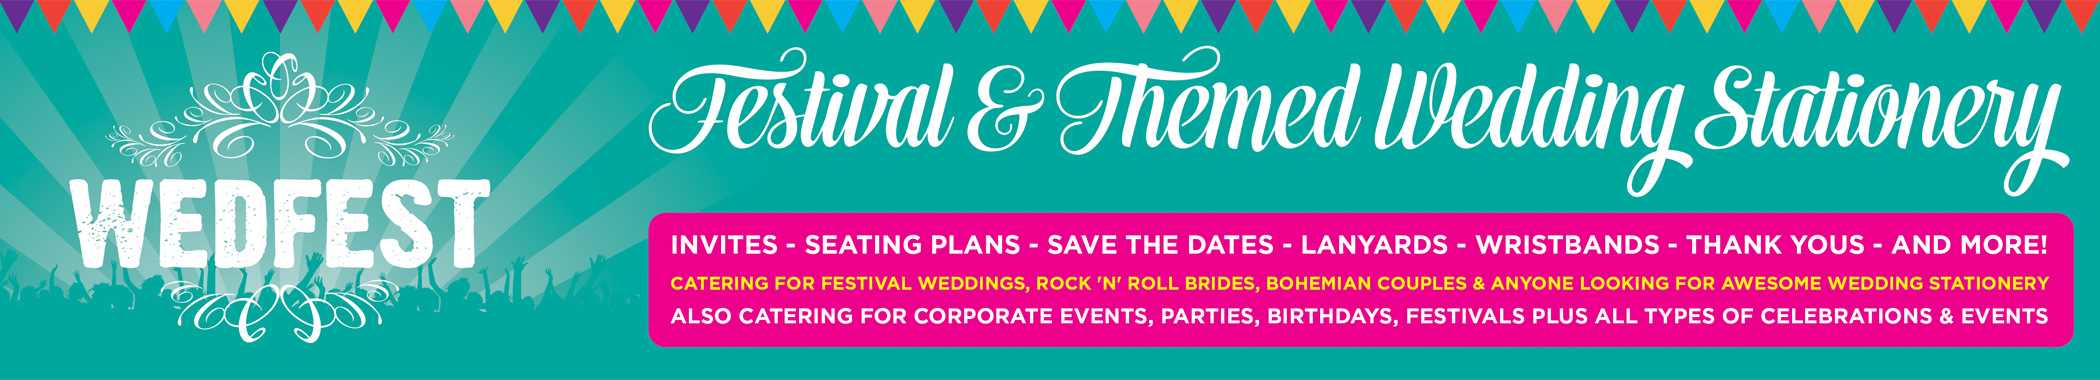 WEDFEST – Festival Themed Wedding Stationery Retina Logo